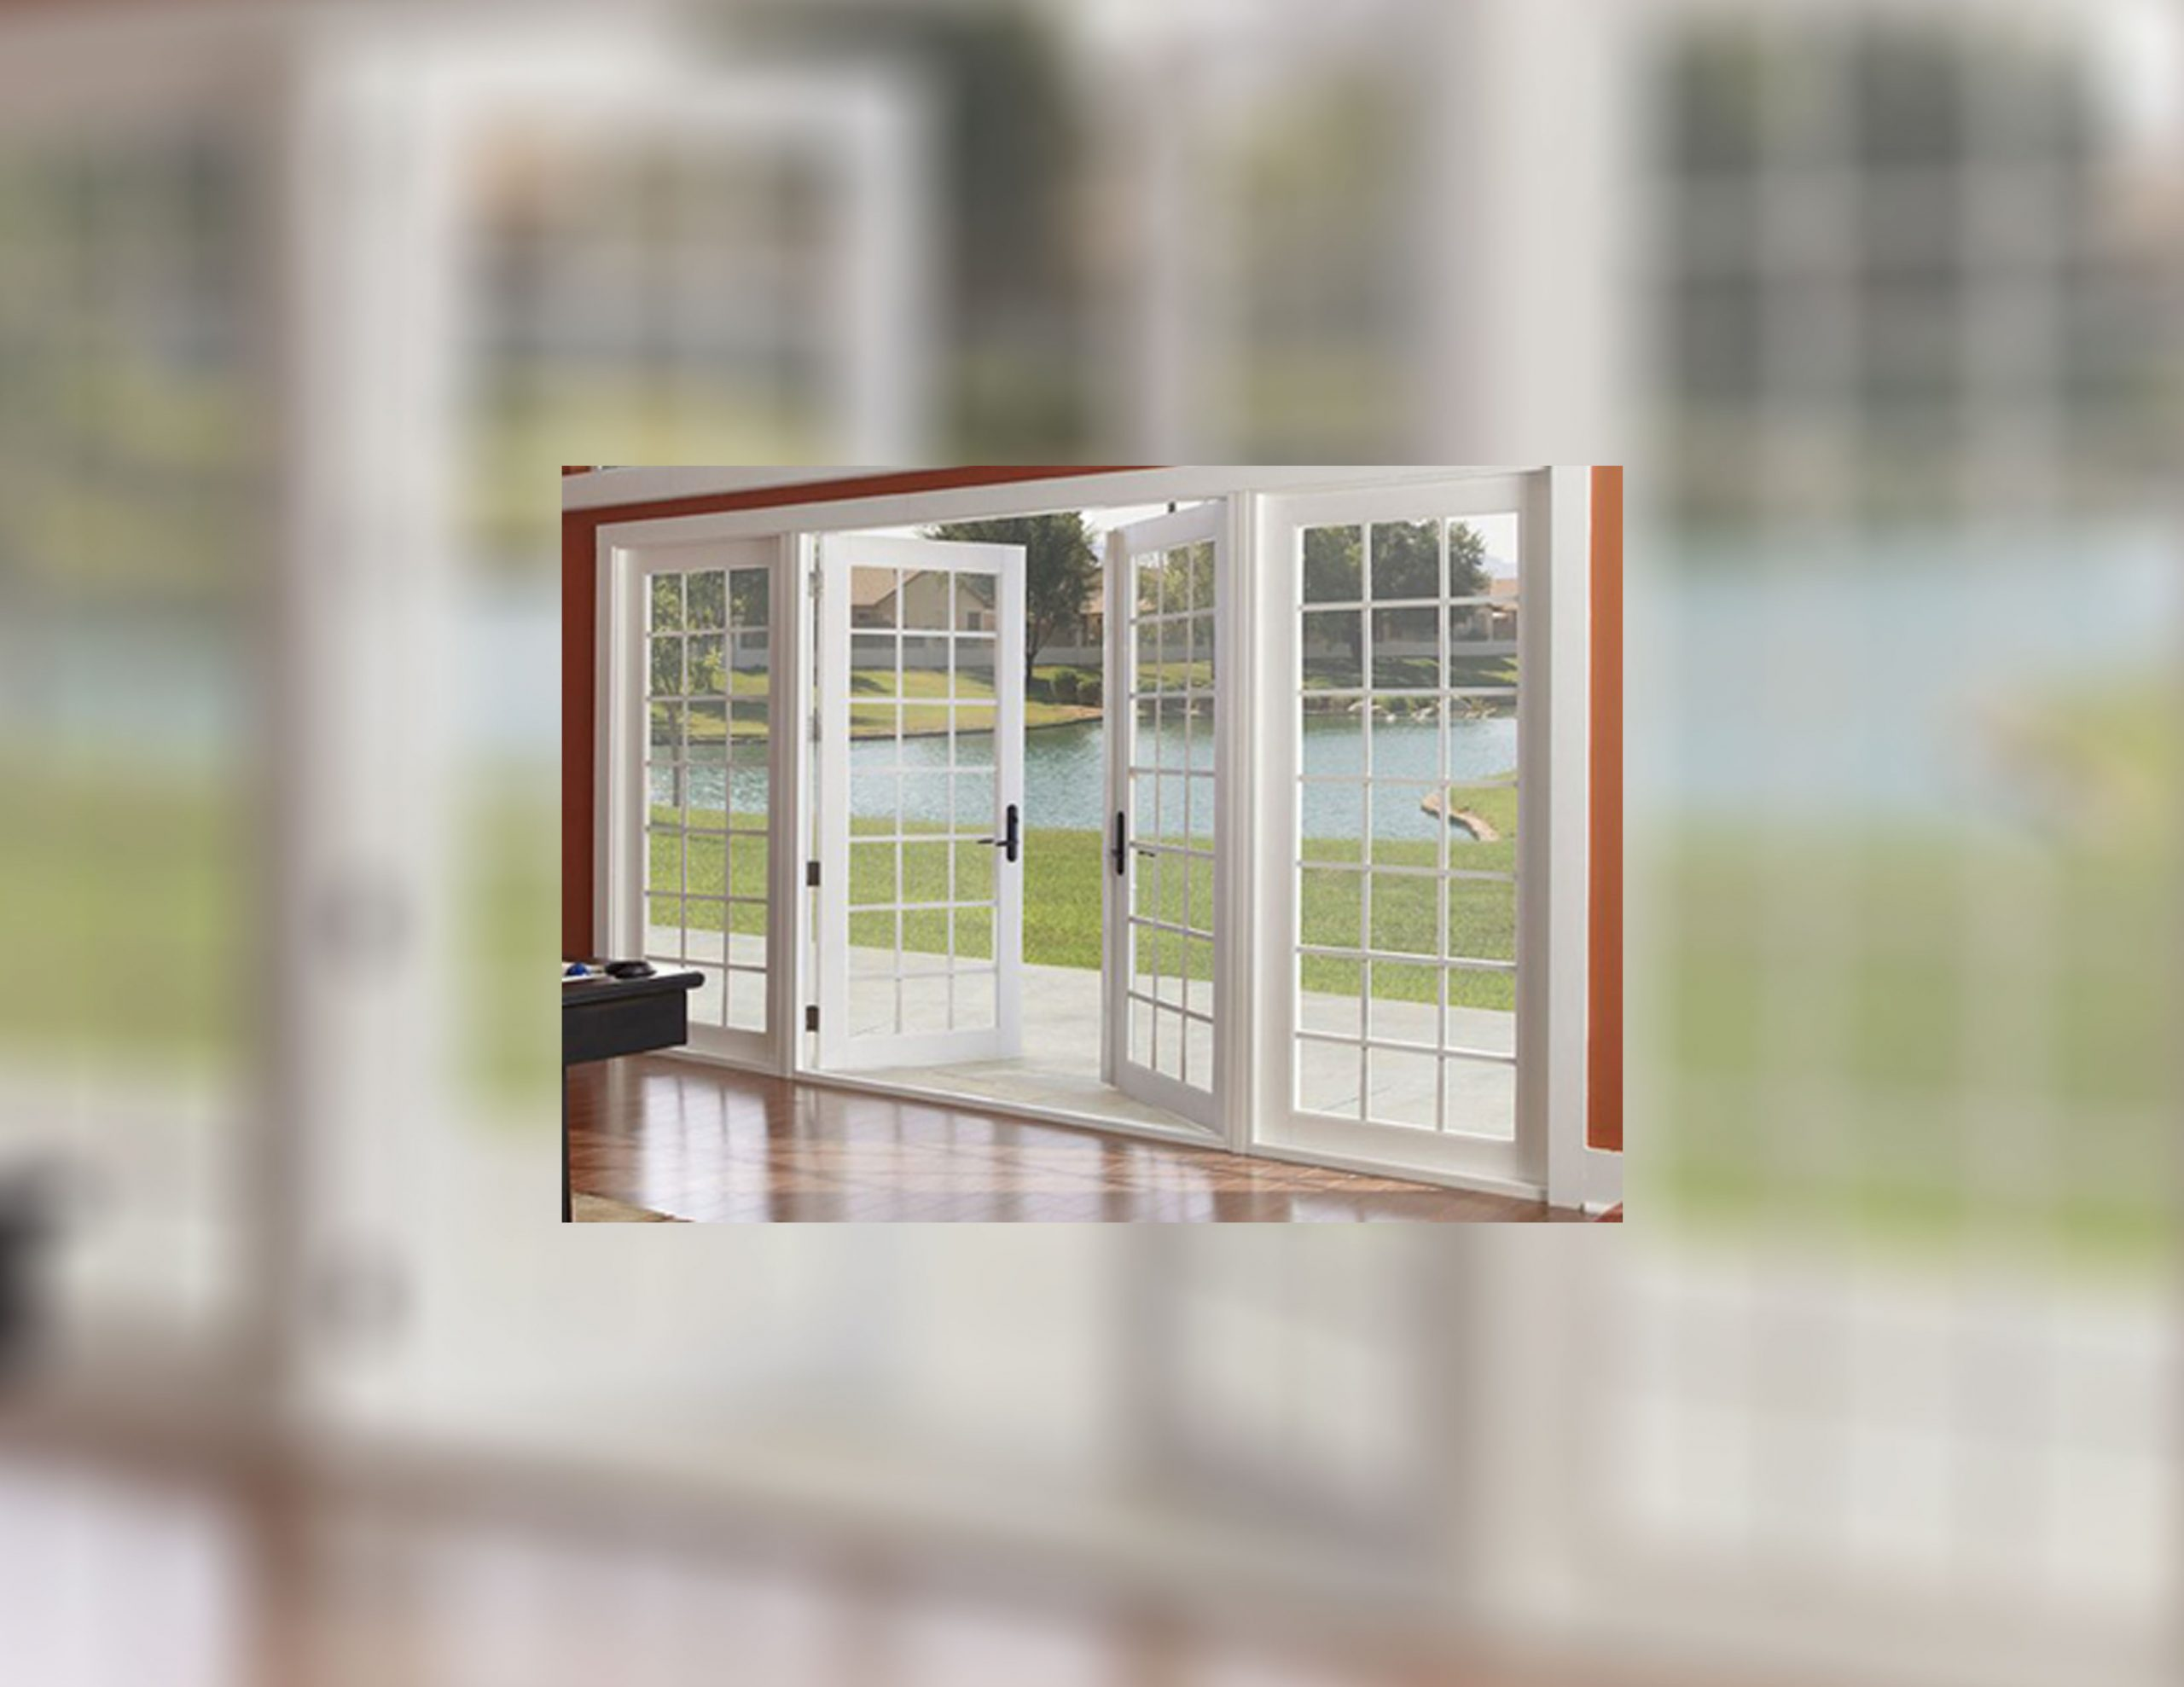 A Multifunctional French Door for Home Improvement